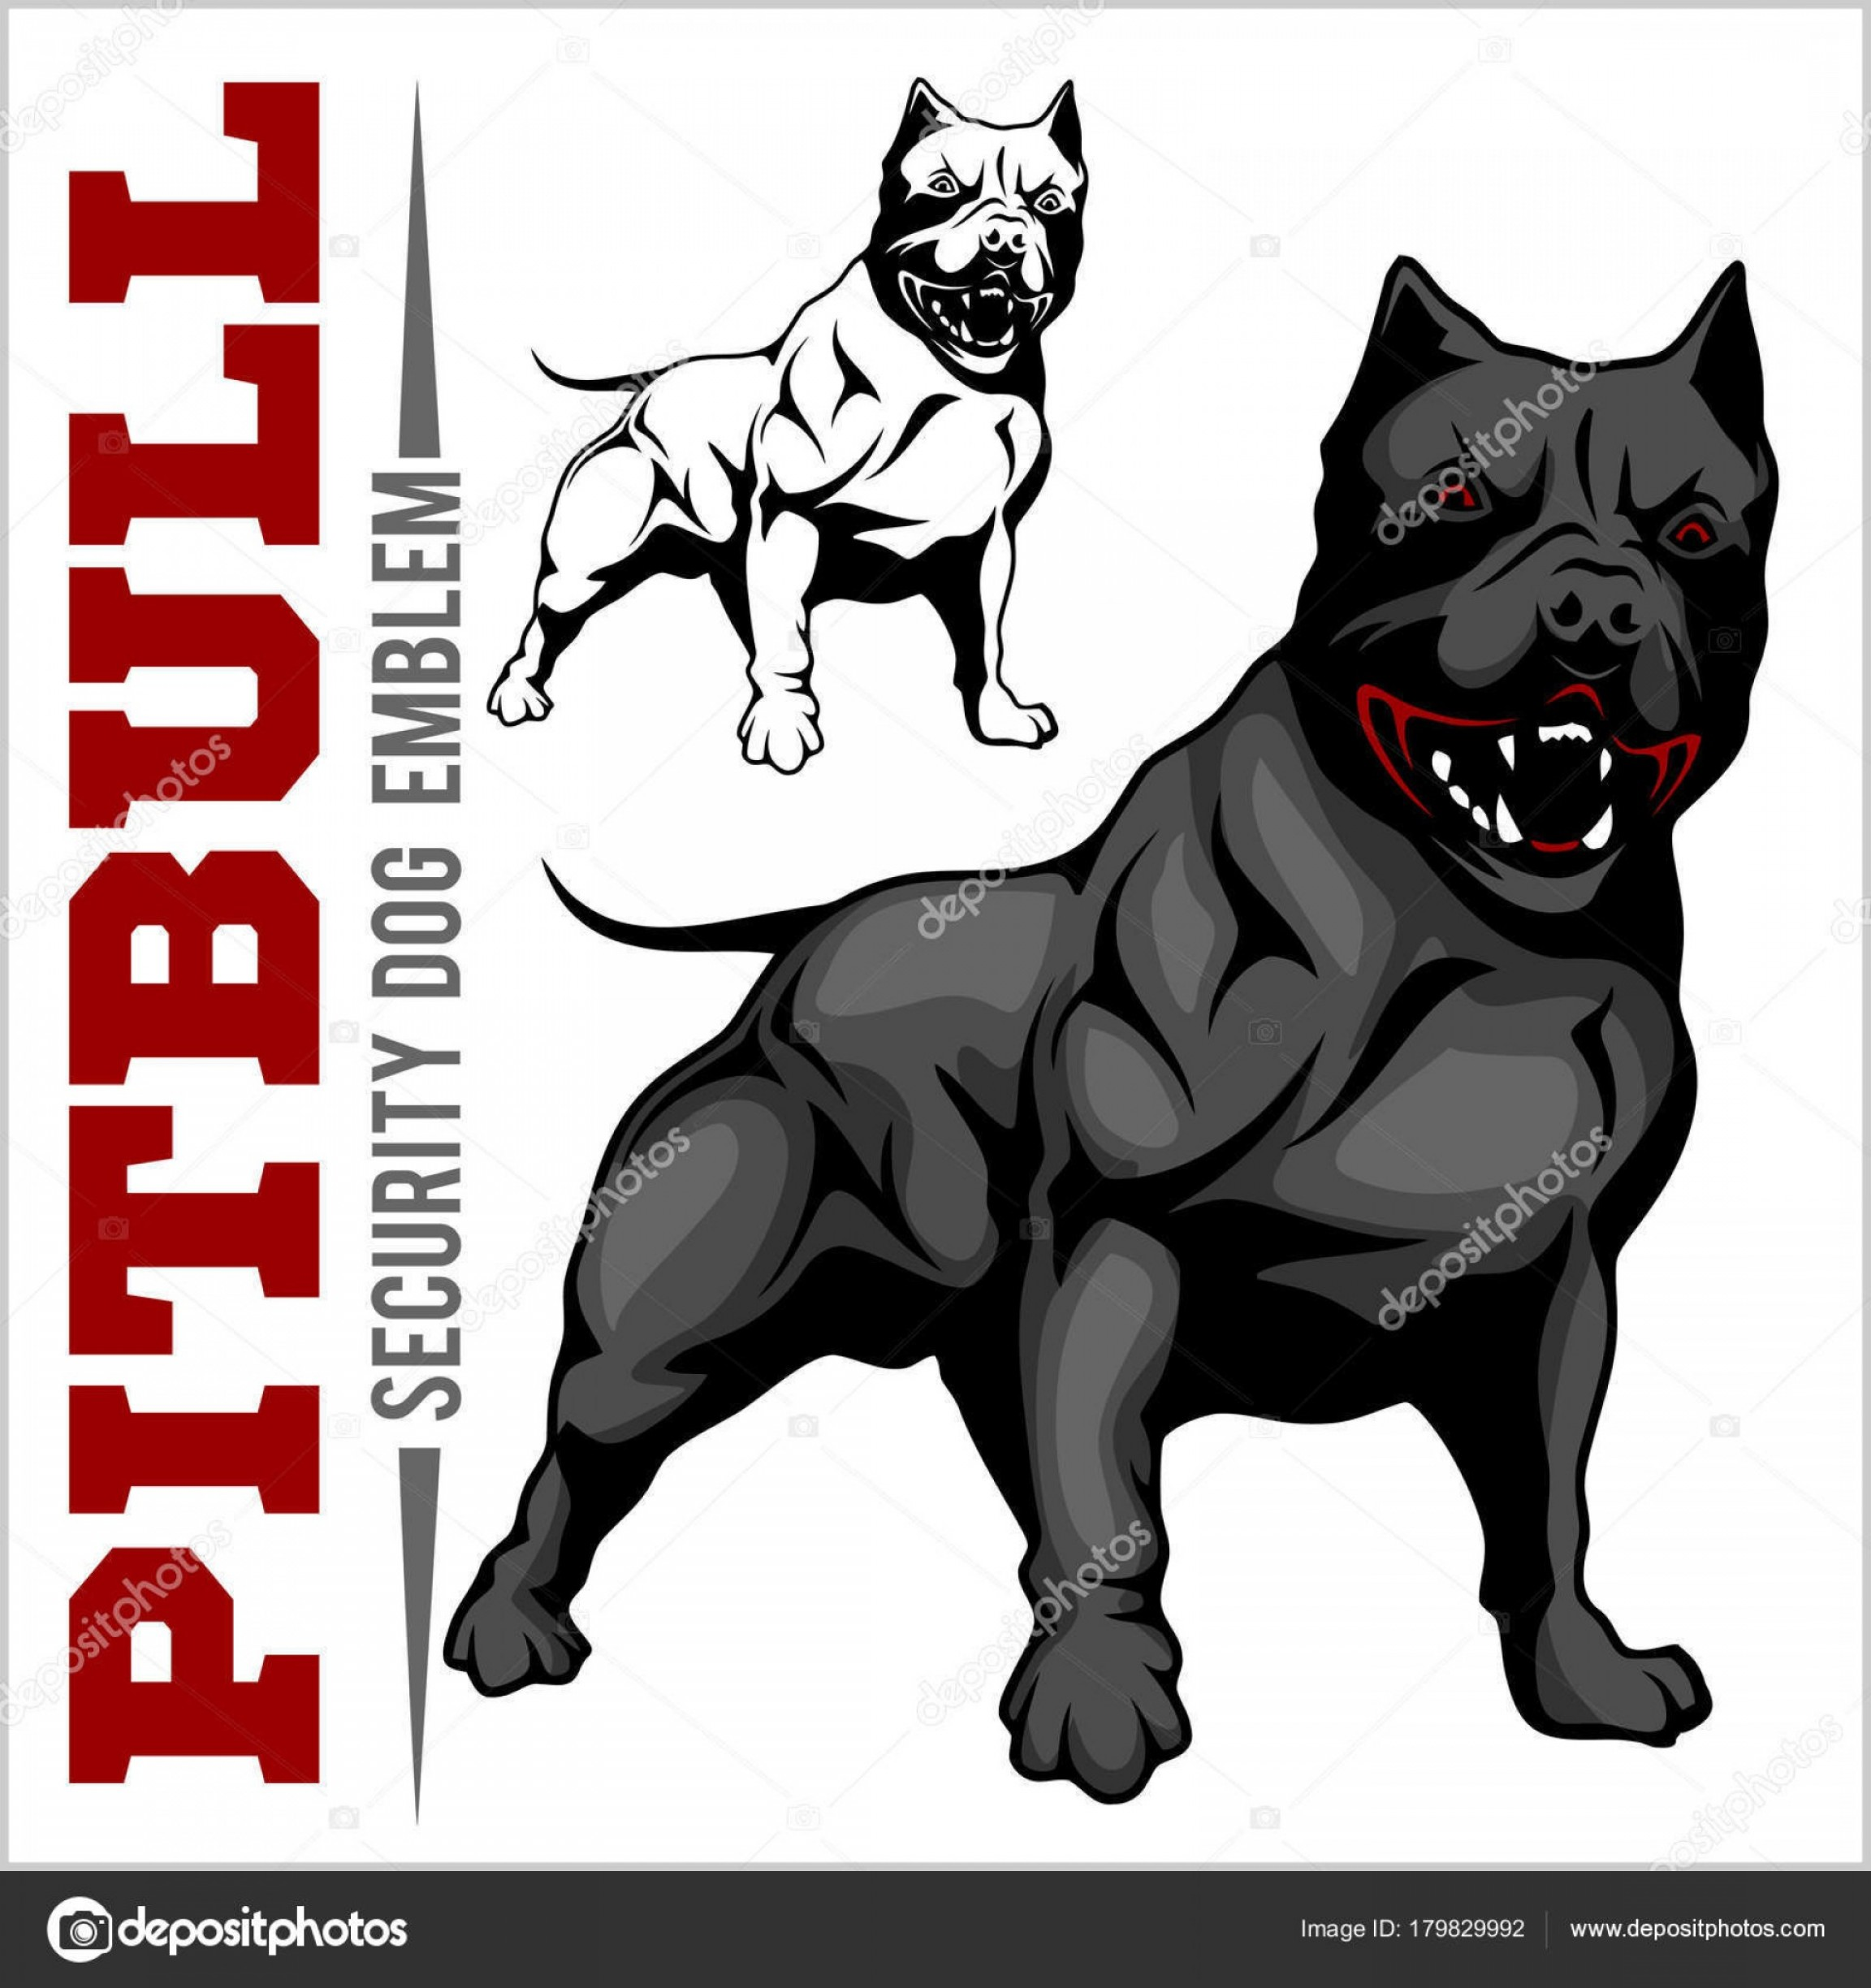 Pit Silhouette Vector: Stock Illustration American Pit Bull Terrier Pitbull